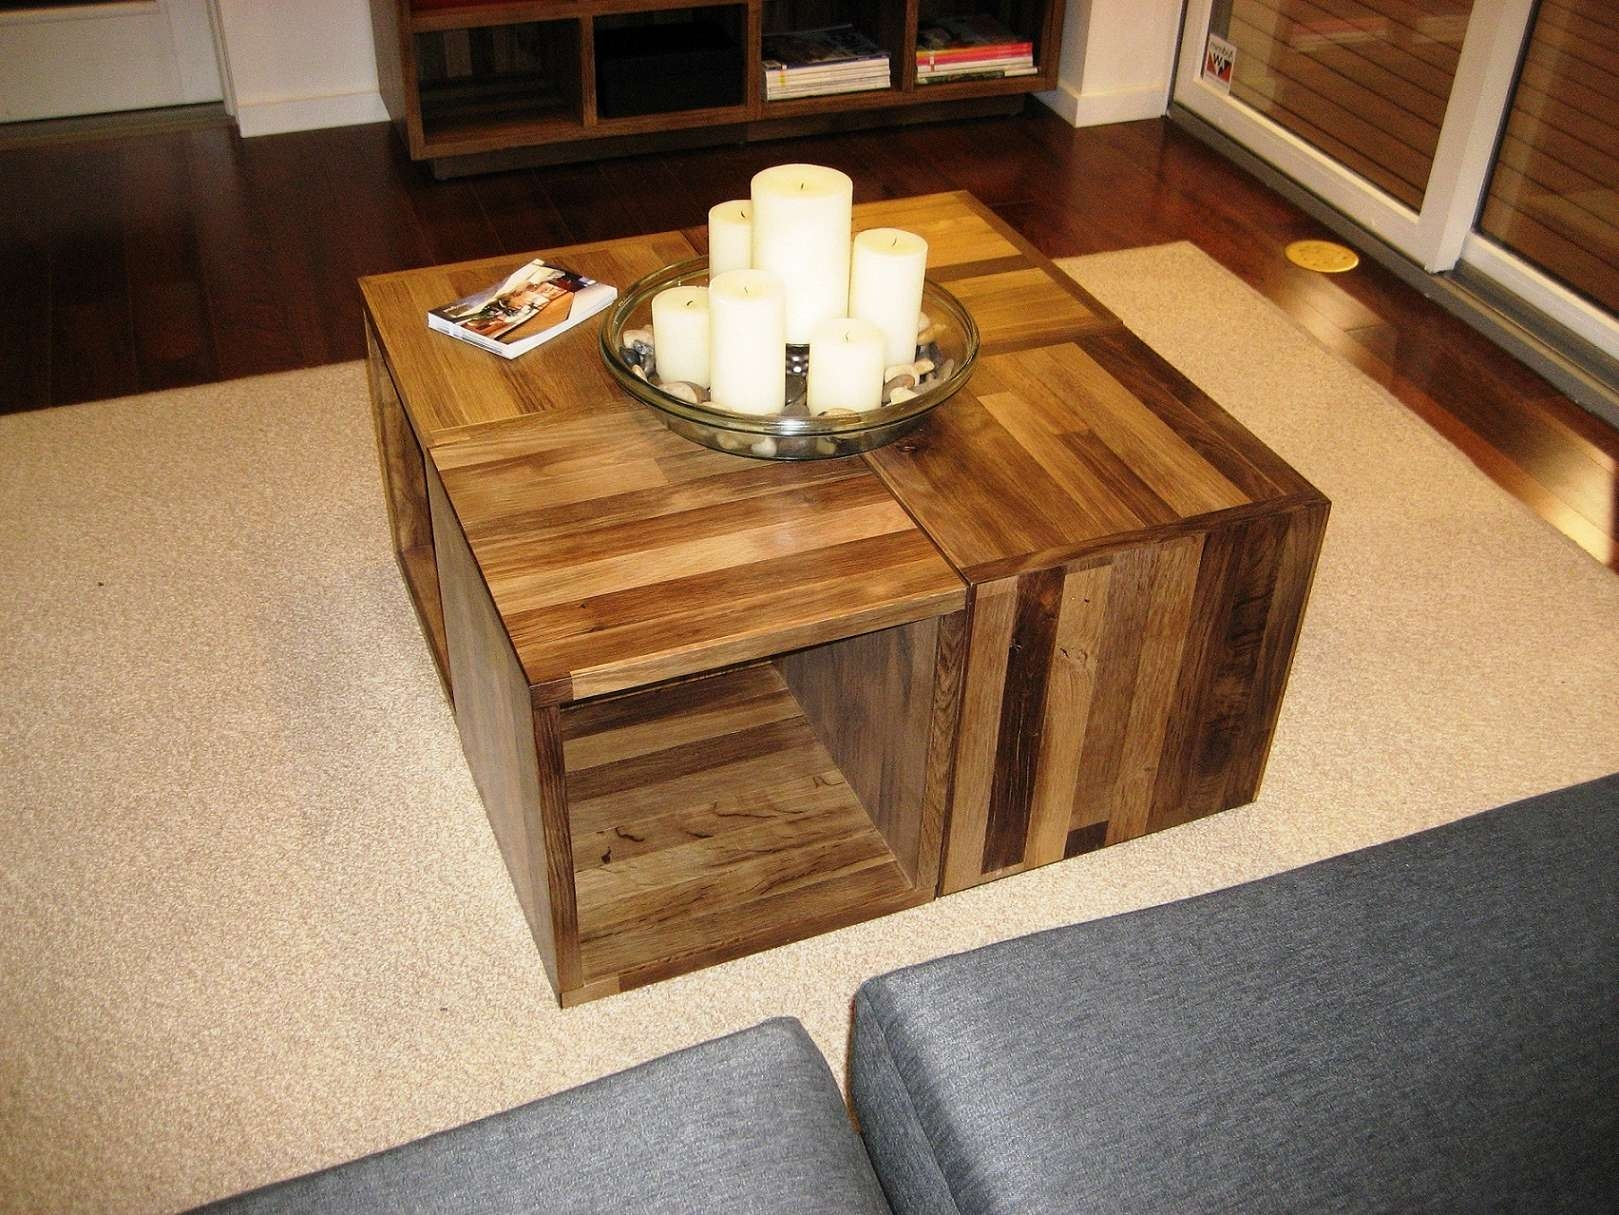 Widely Used Extra Large Rustic Coffee Tables For Coffee Tables : Low Large Coffee Table Tables Marvelous Images (View 20 of 20)